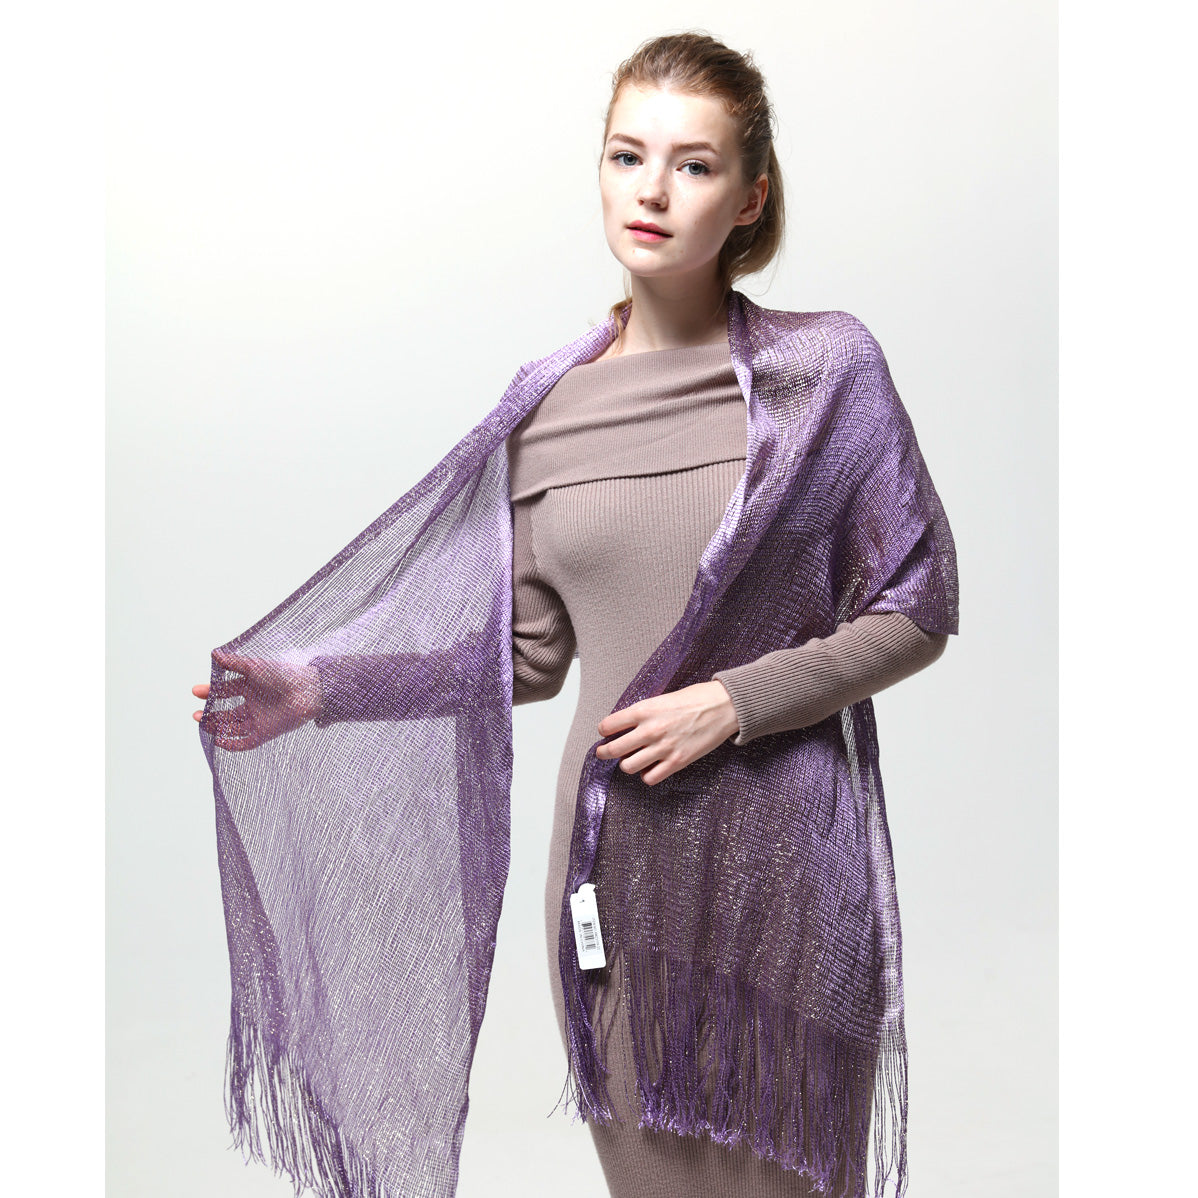 AM23118-22 Lurex Sheer Metallic Evening Scarf  Light Purple